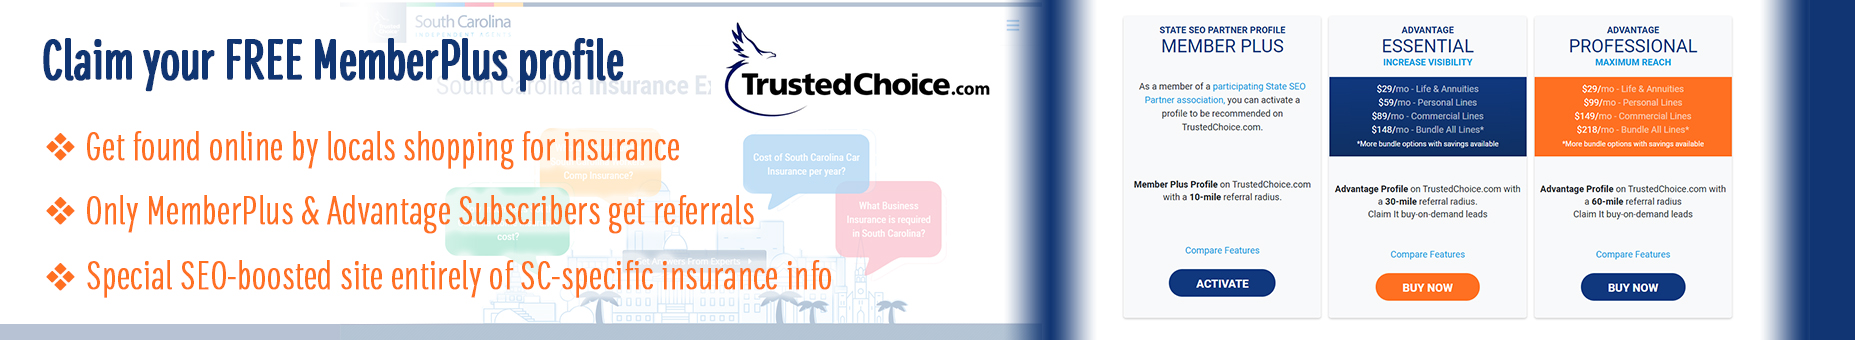 Upgrade your TrustedChoice.com profile for FREE